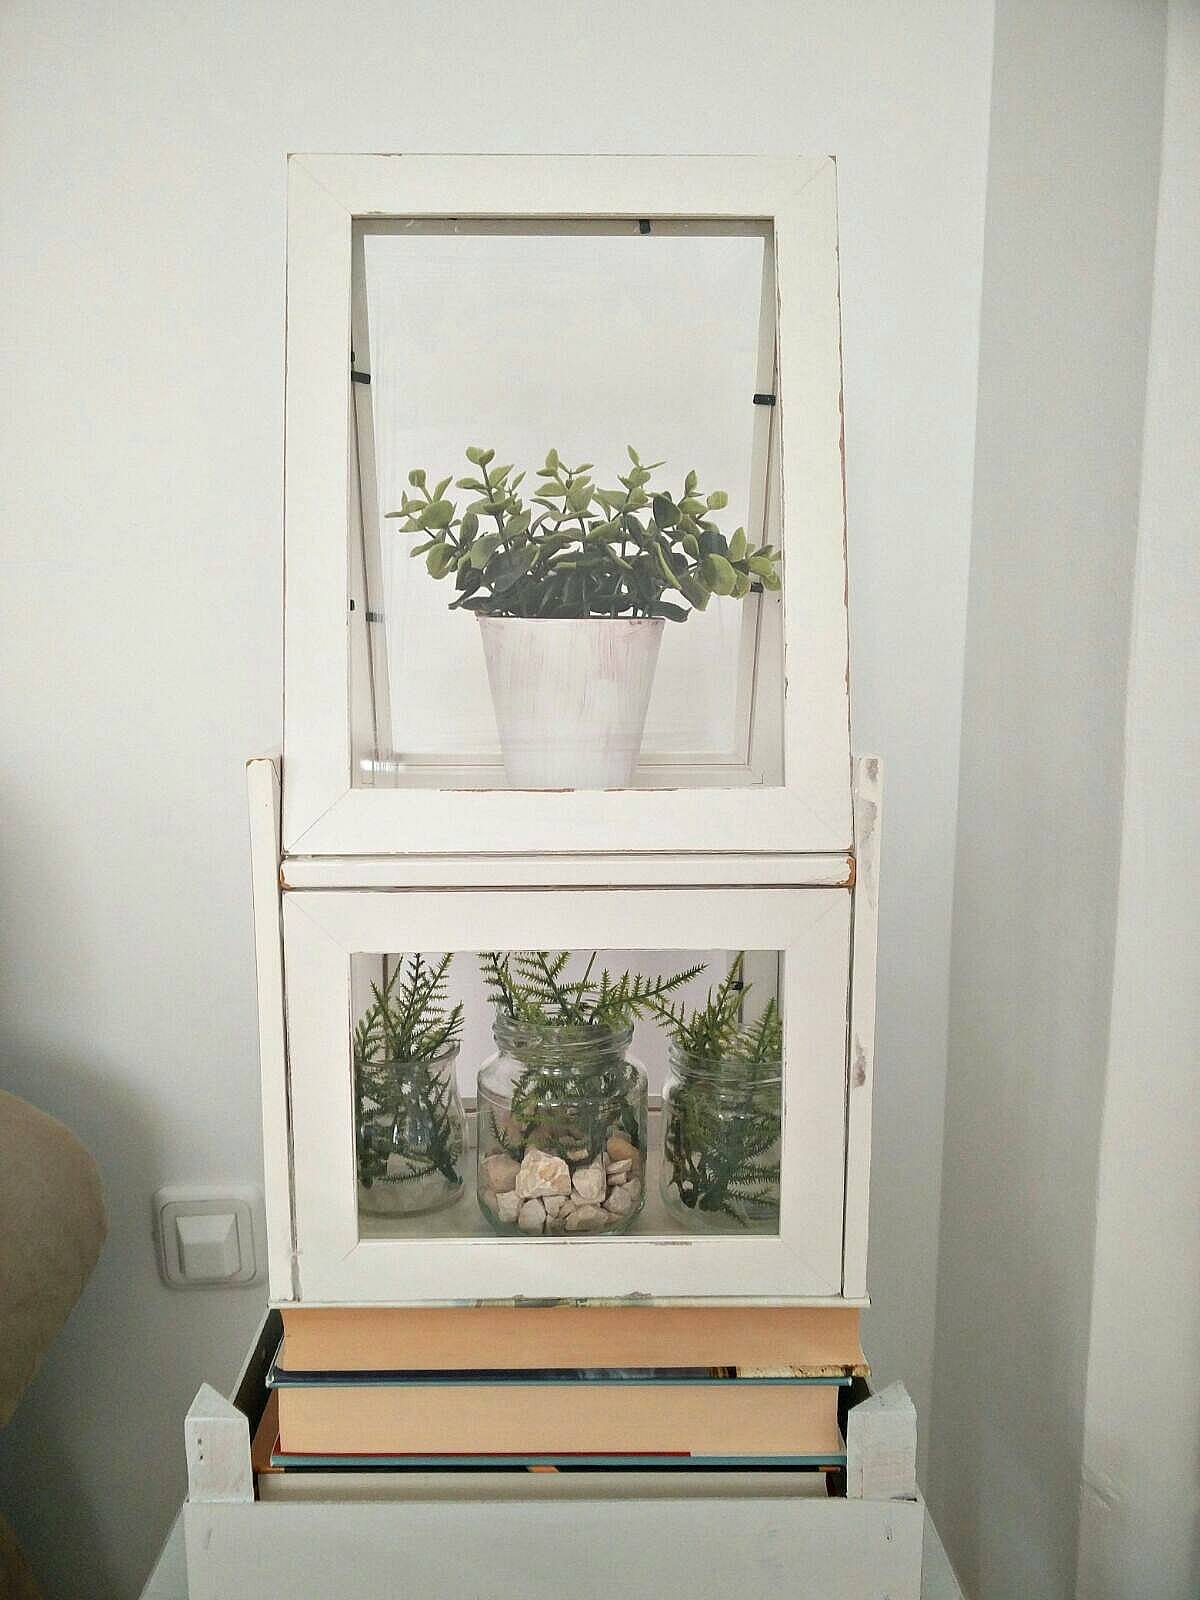 DIY-Terrarium-using-Ikea-frames-kreativk.net-14